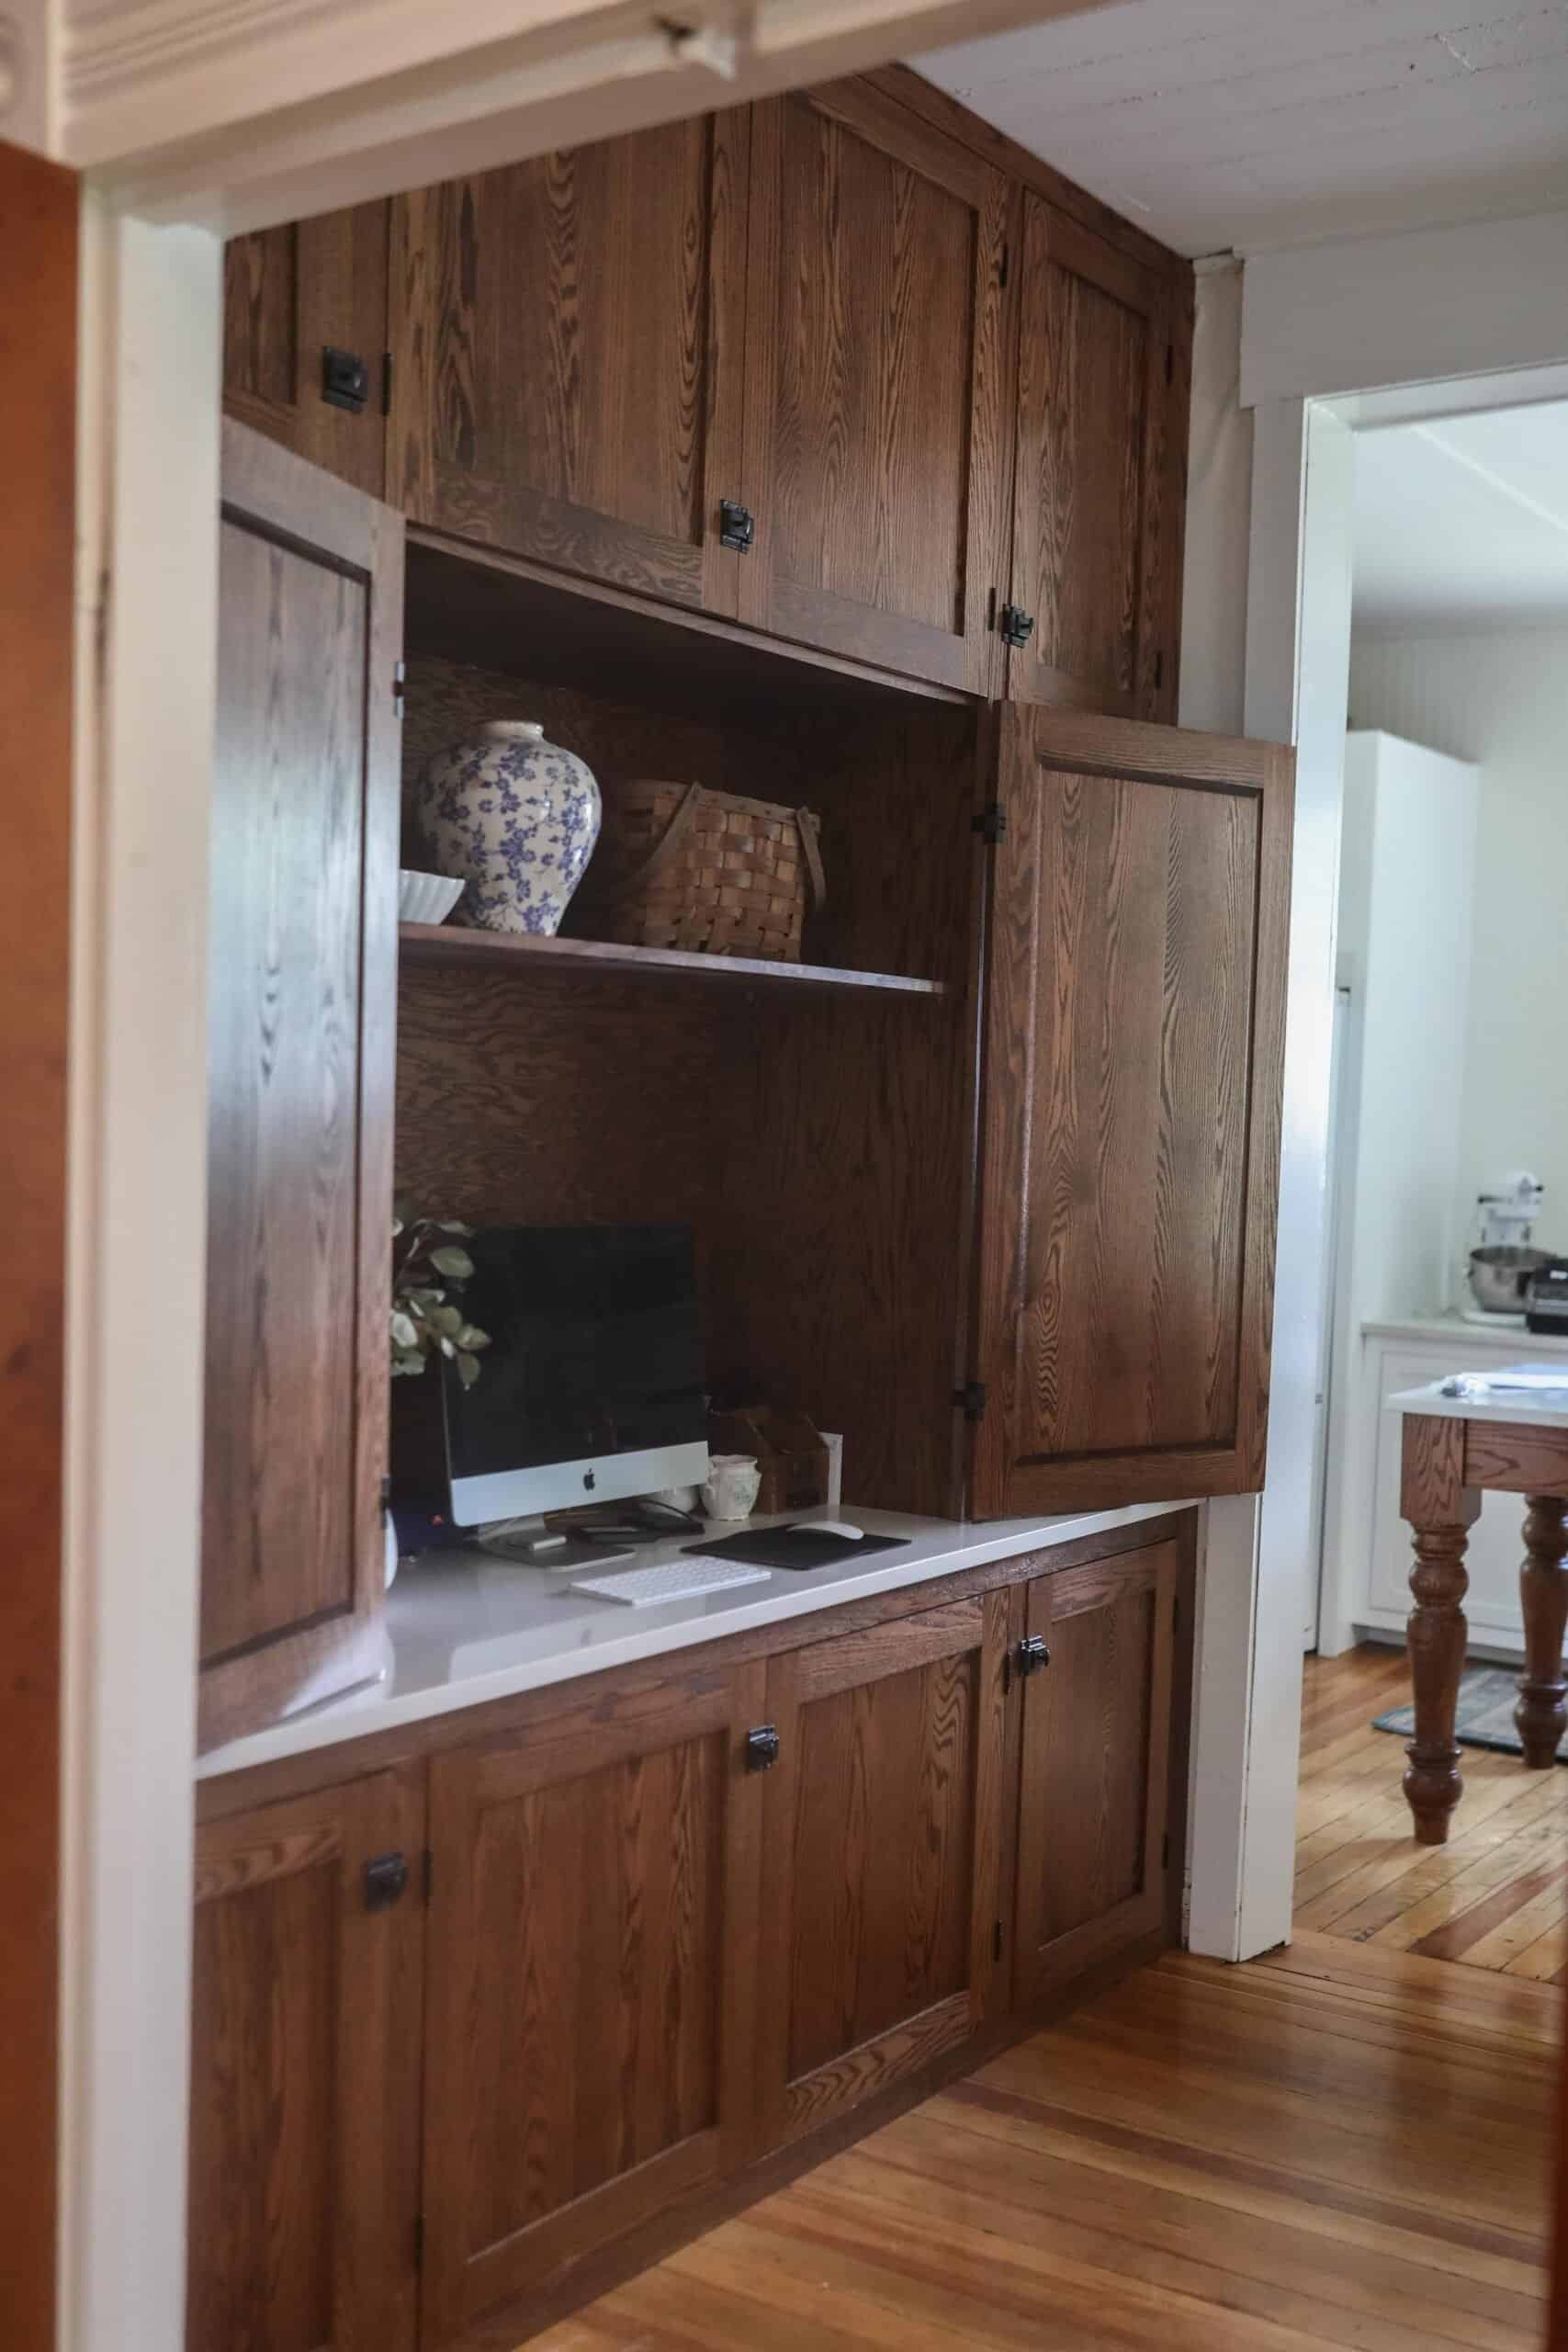 wood cabinet doors open to reveal an organized office